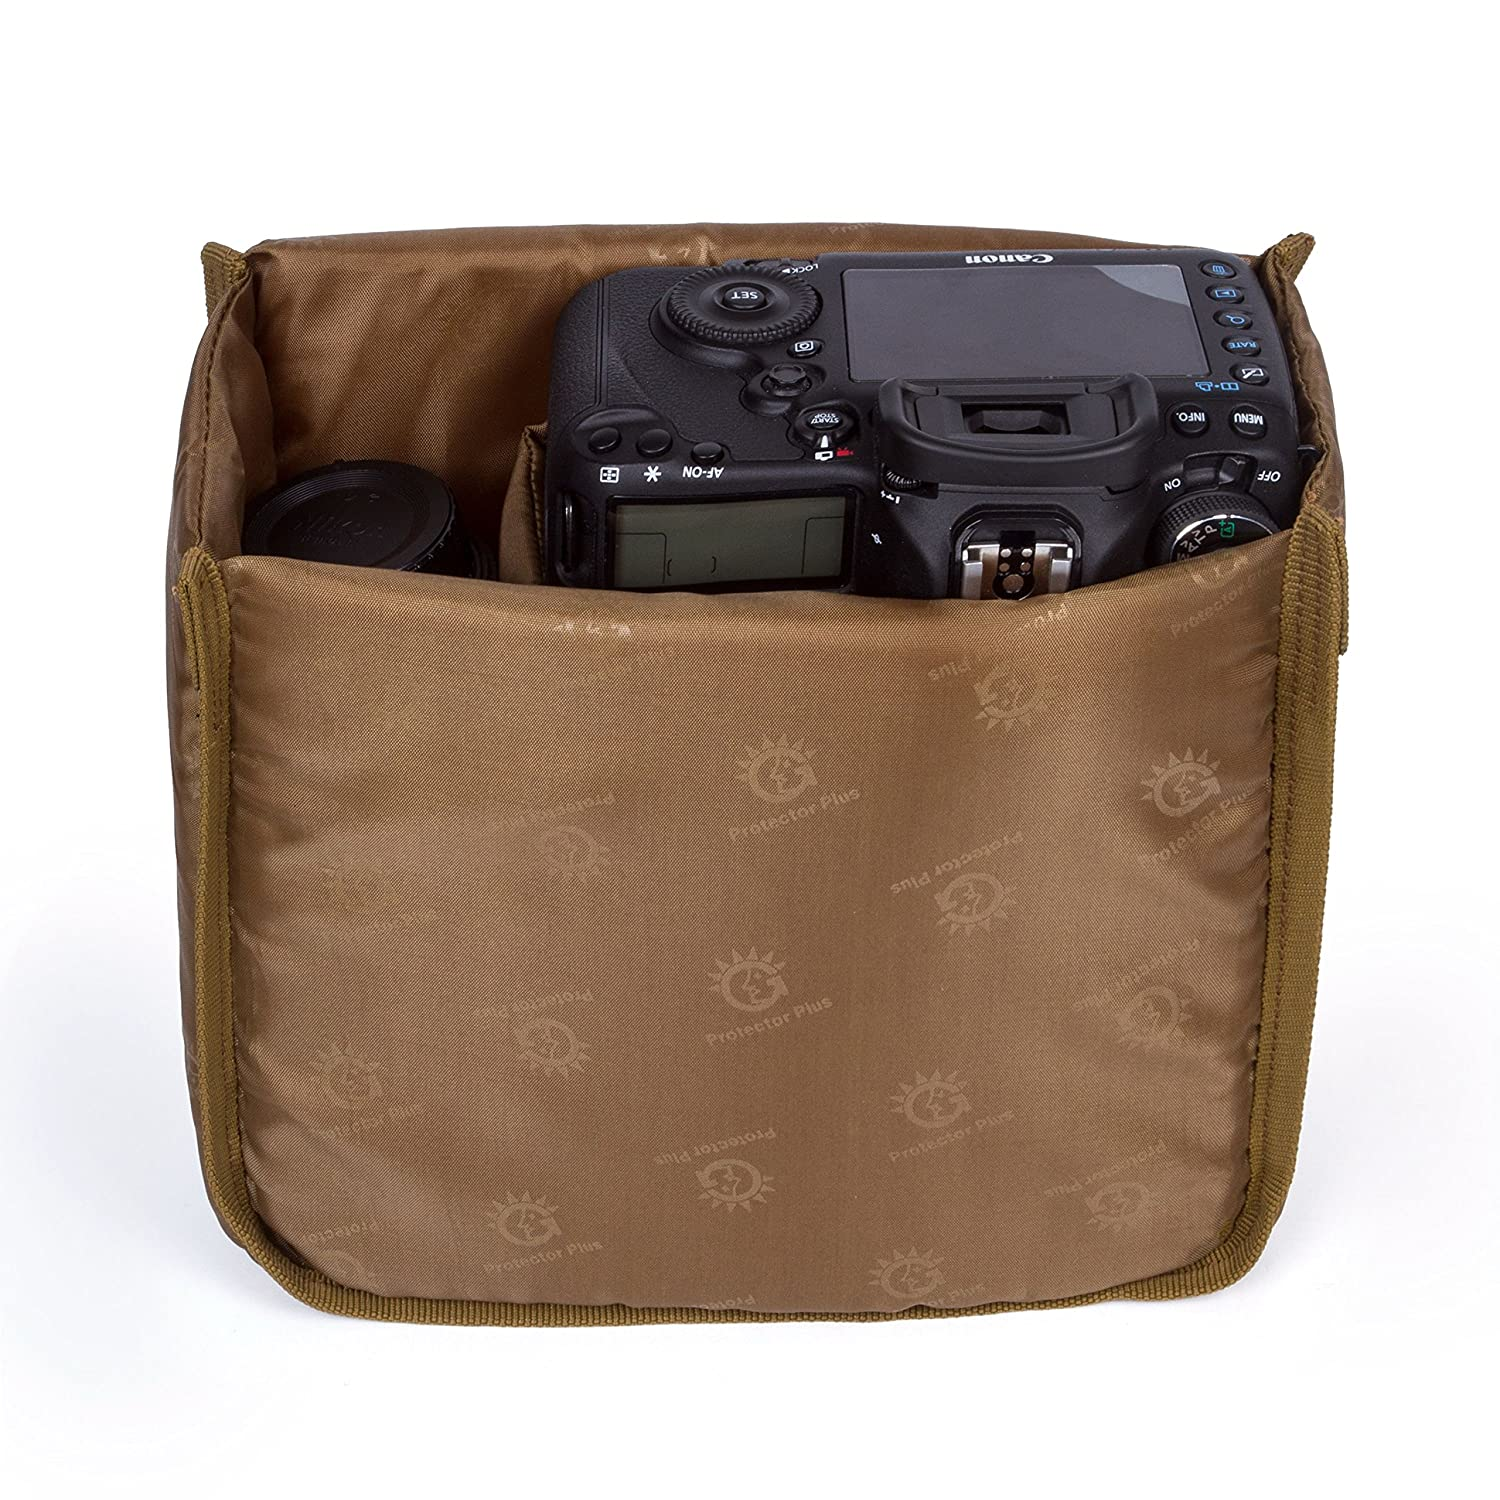 G-raphy Camera Insert Bag Camera Case DSLR SLR Insert Protective Bag Cover 8.6'' x 8.6'' x 4.3' PWaterproof Shockproof Travel for Sony Canon Nikon Olympus Pentax and etc (Brown) i-graphy